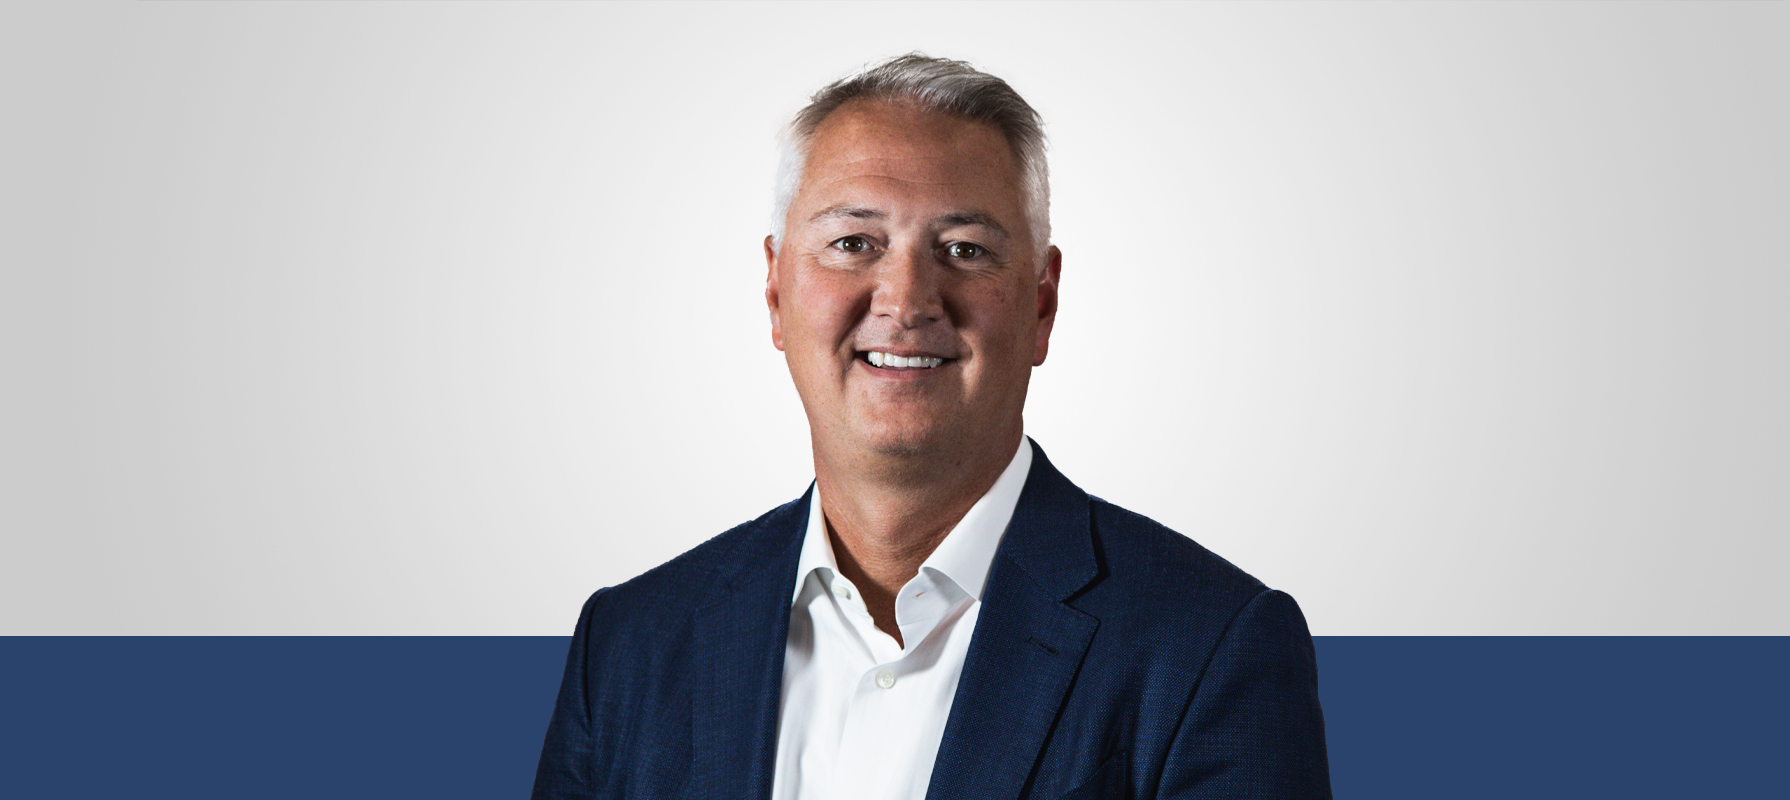 Next Frontier Brands Expands Leadership Roster,  Appoints Retail Industry Veteran Bill Wafford as Chief Financial Officer